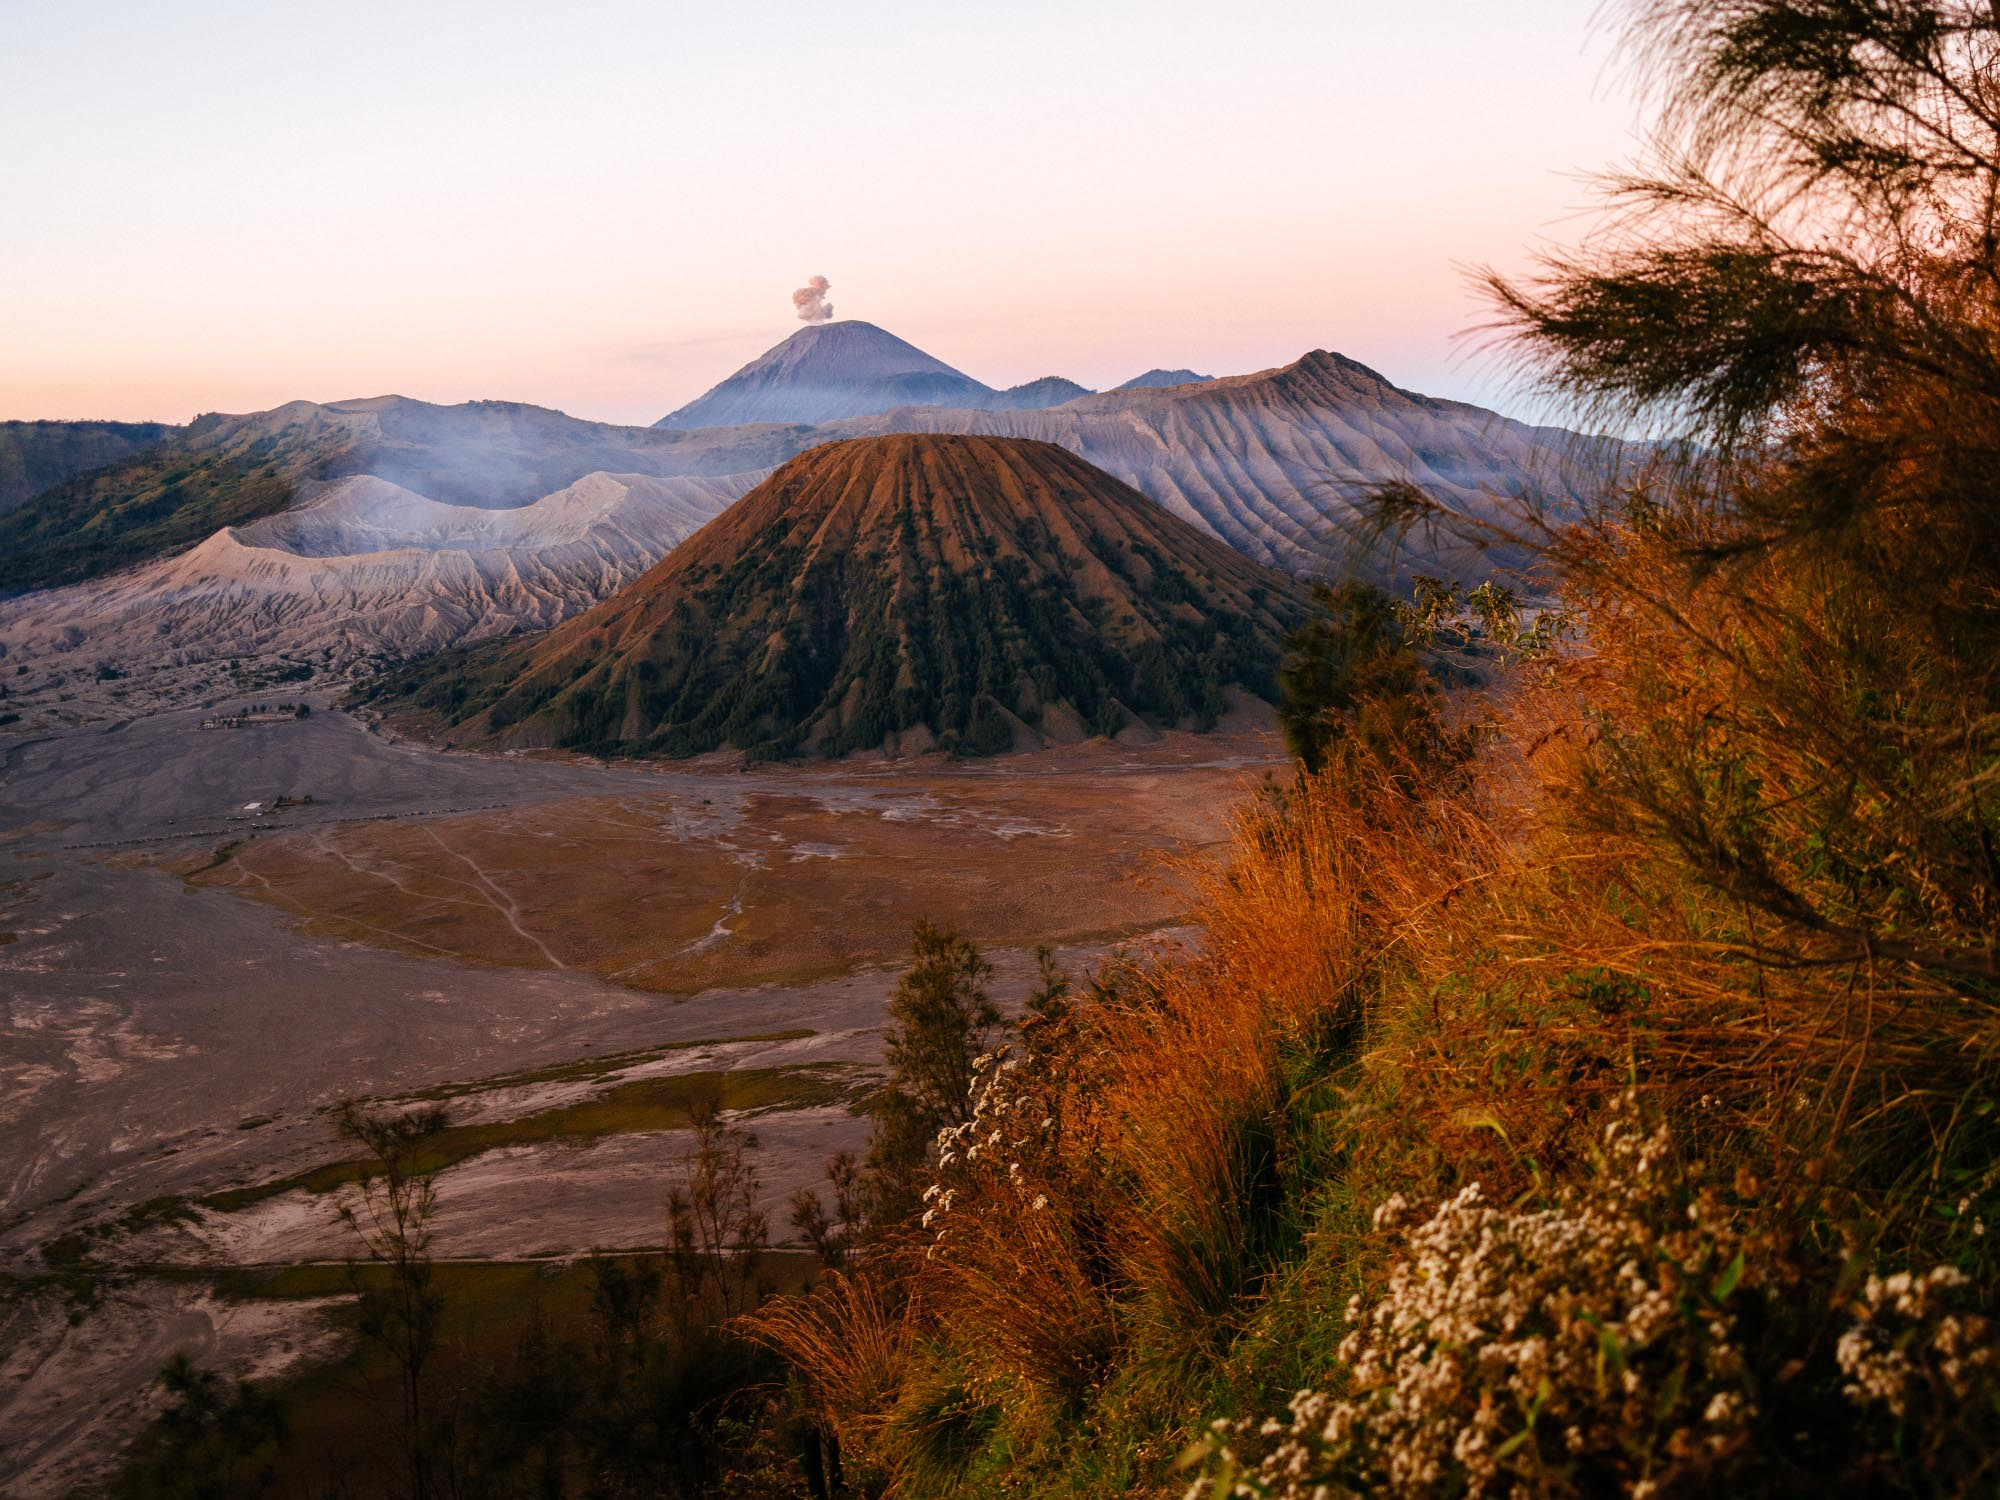 Don't worry, you'll see amazing things. This is Mount Bromo in Indonesia.